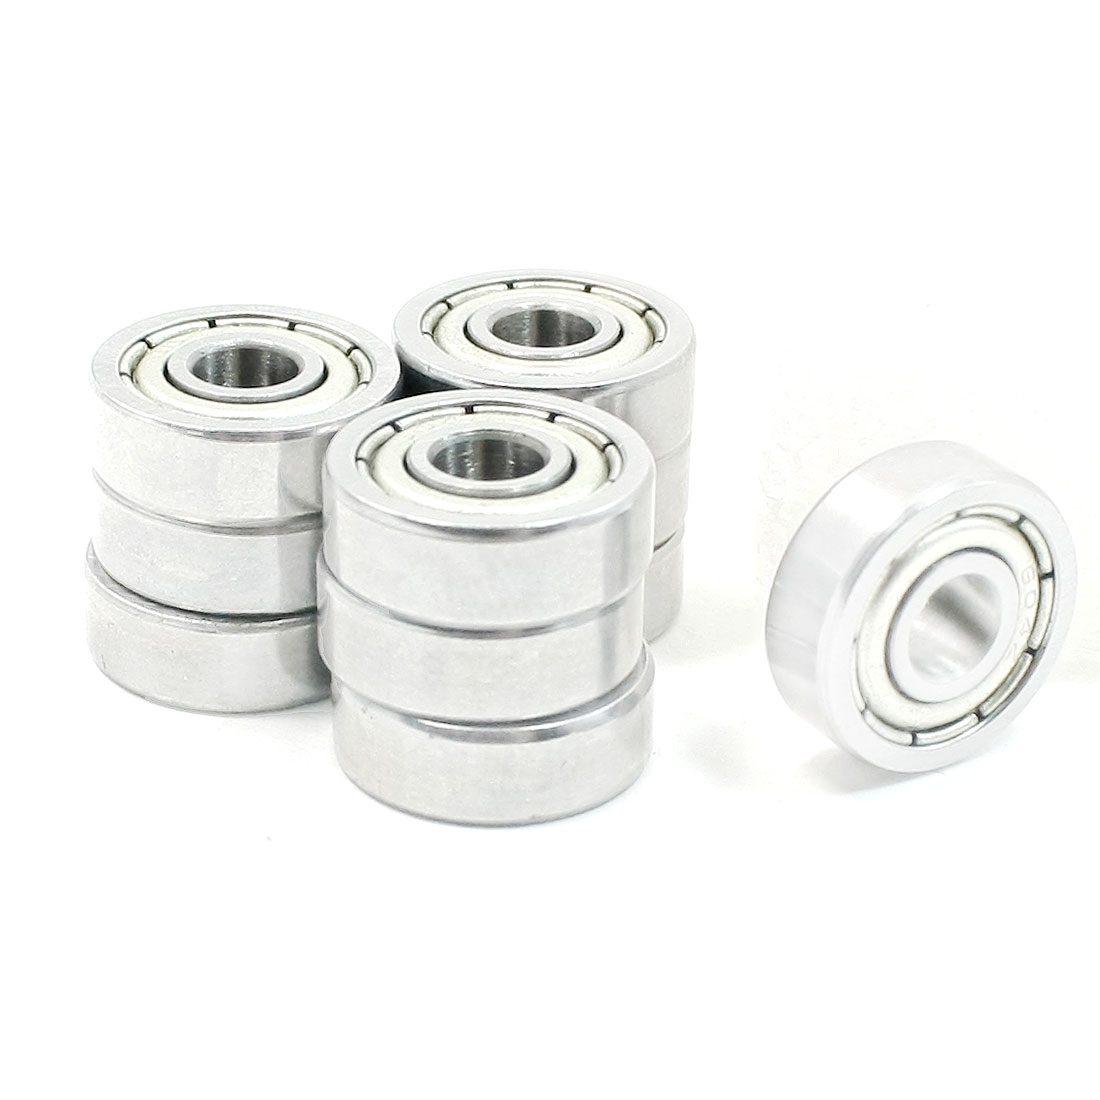 12mm x 4mm x 4mm Shielded Sealed 604 Motor Deep Groove Ball Bearing 10 PCS